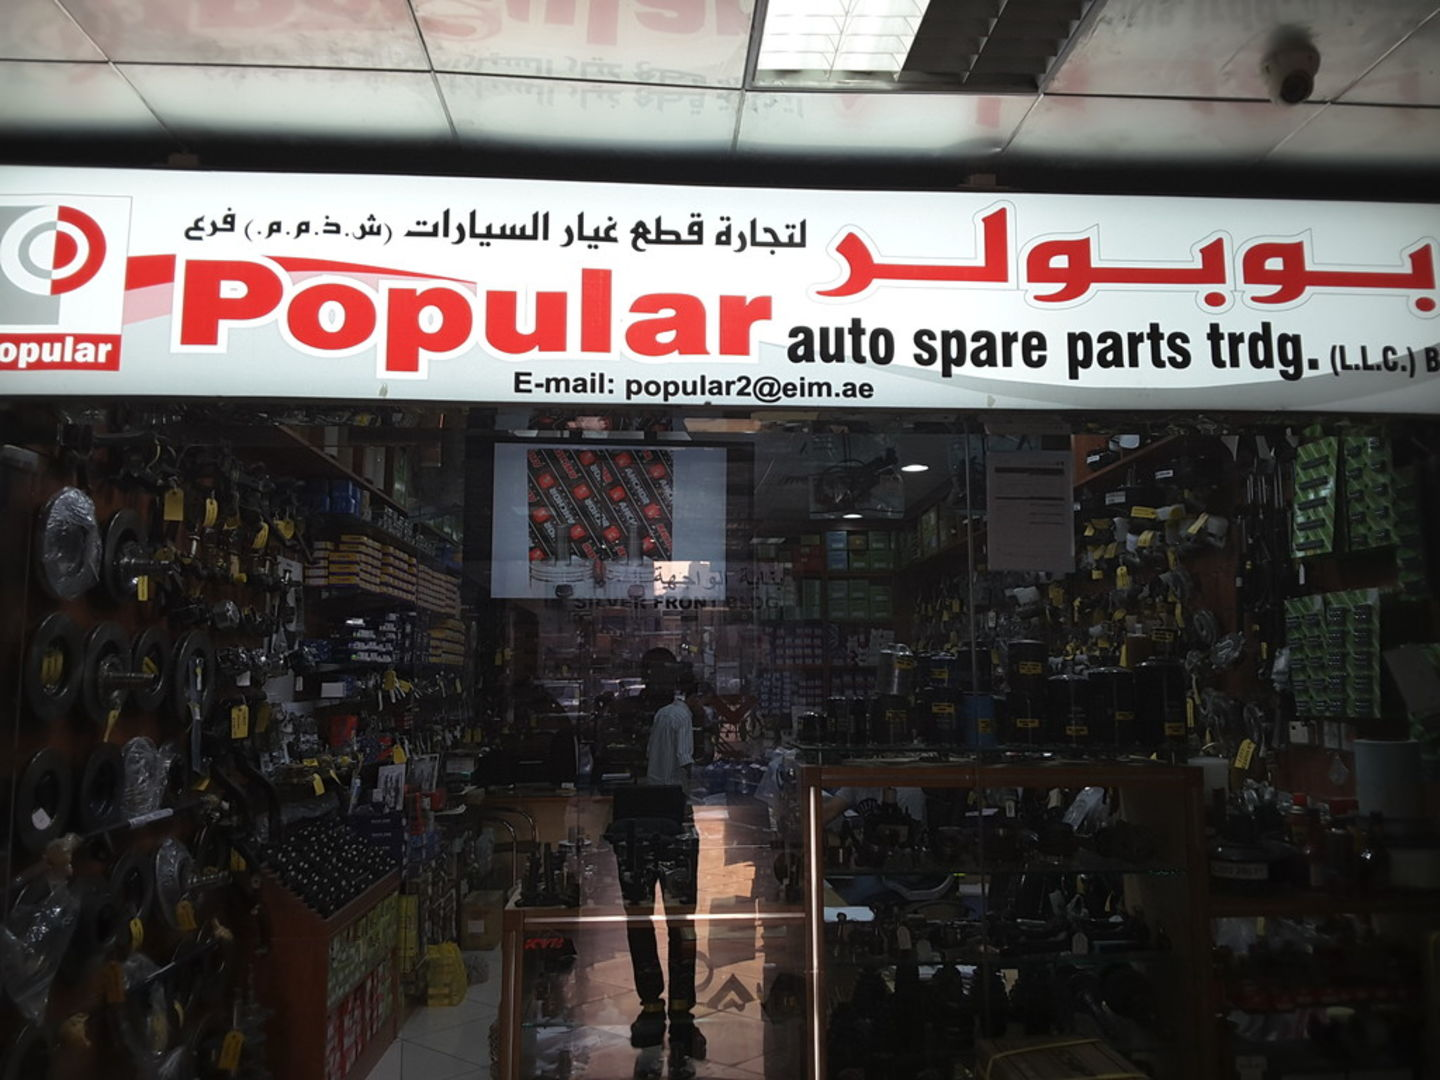 HiDubai-business-popular-auto-spare-parts-trading-transport-vehicle-services-auto-spare-parts-accessories-naif-dubai-2